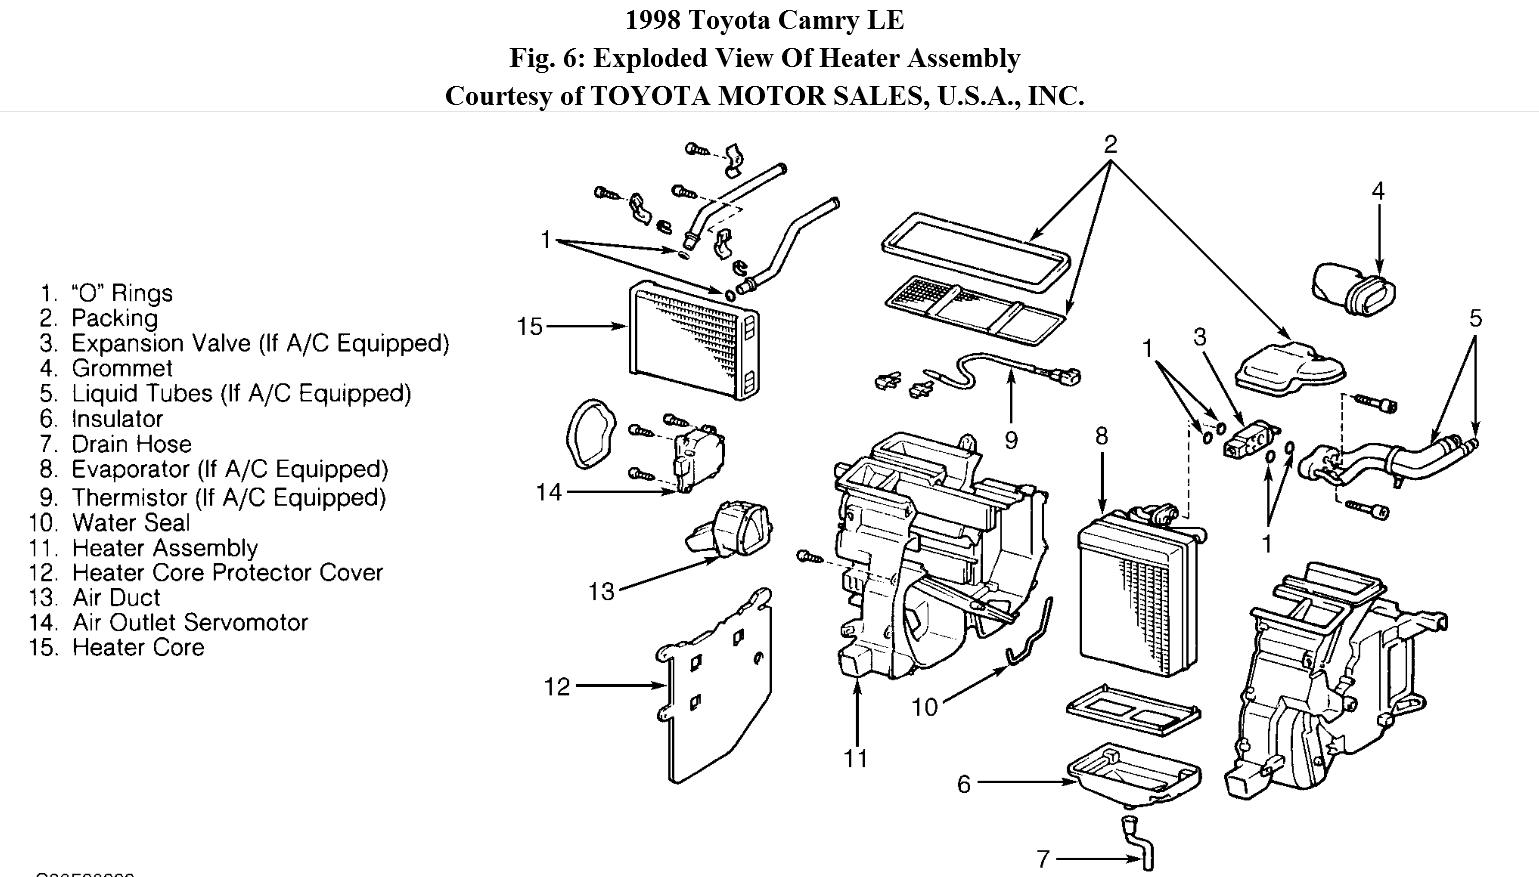 engine toyota schematic diagrams air ducts